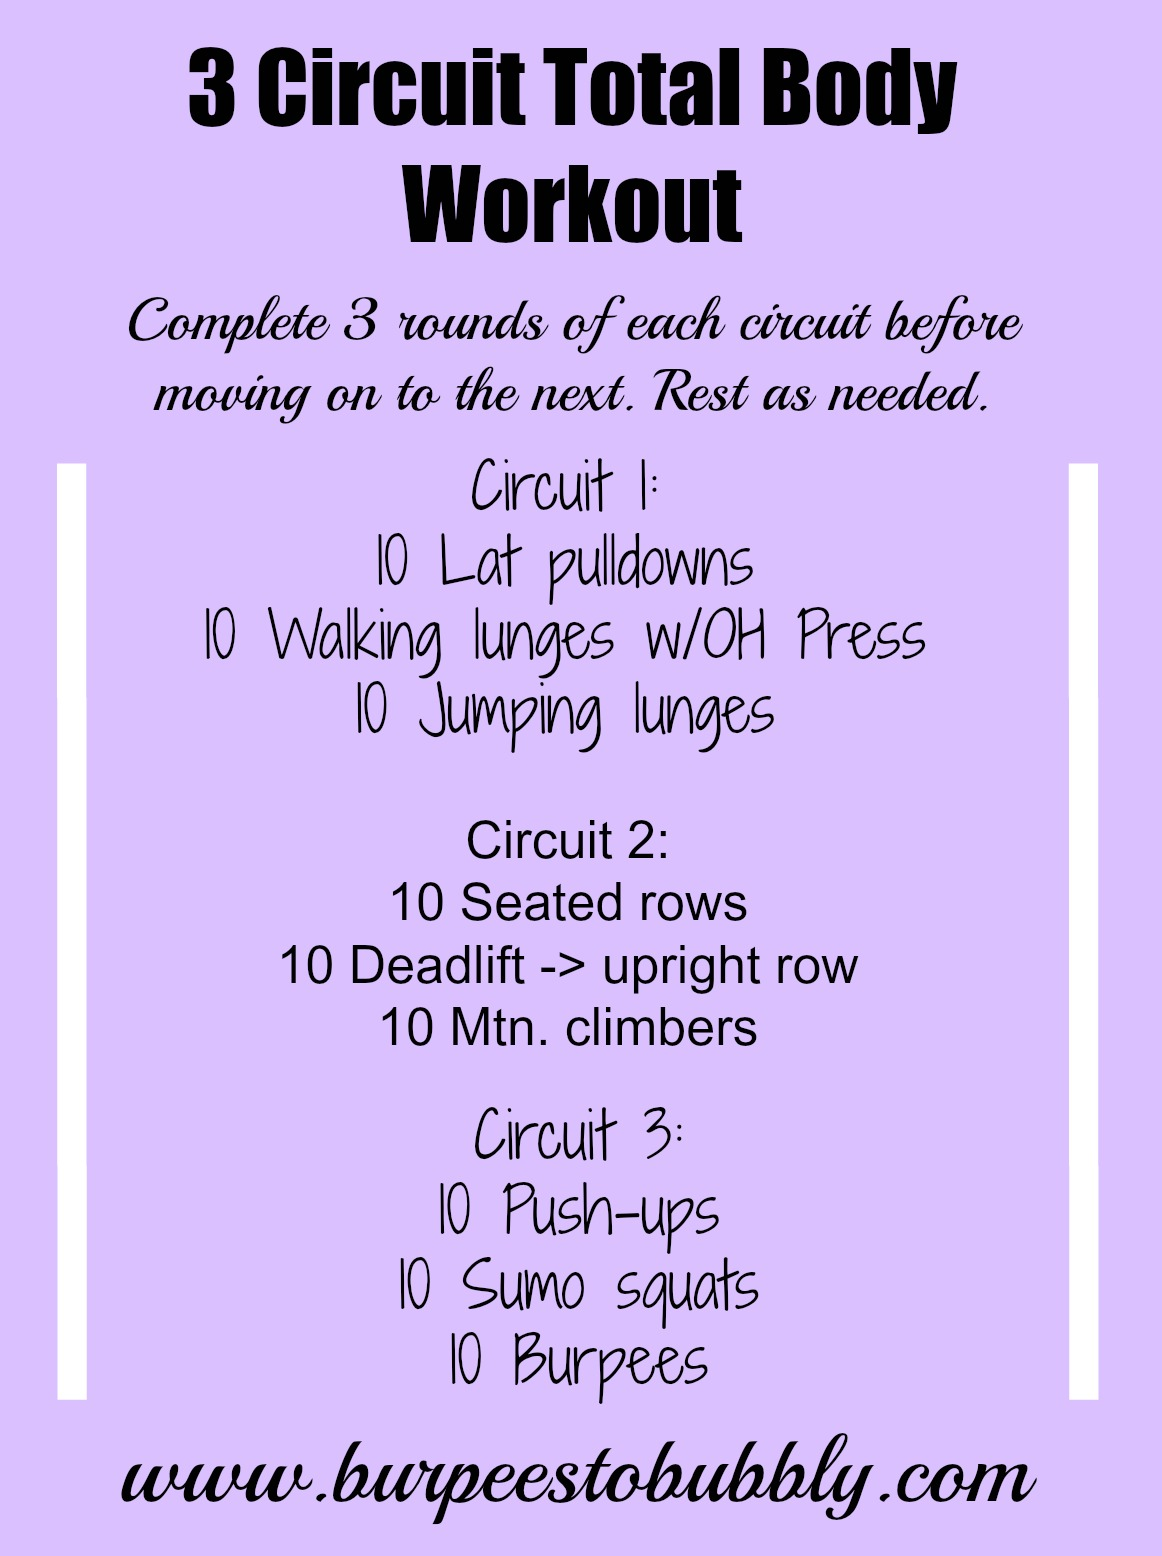 Circuit Workout Burpees To Bubbly